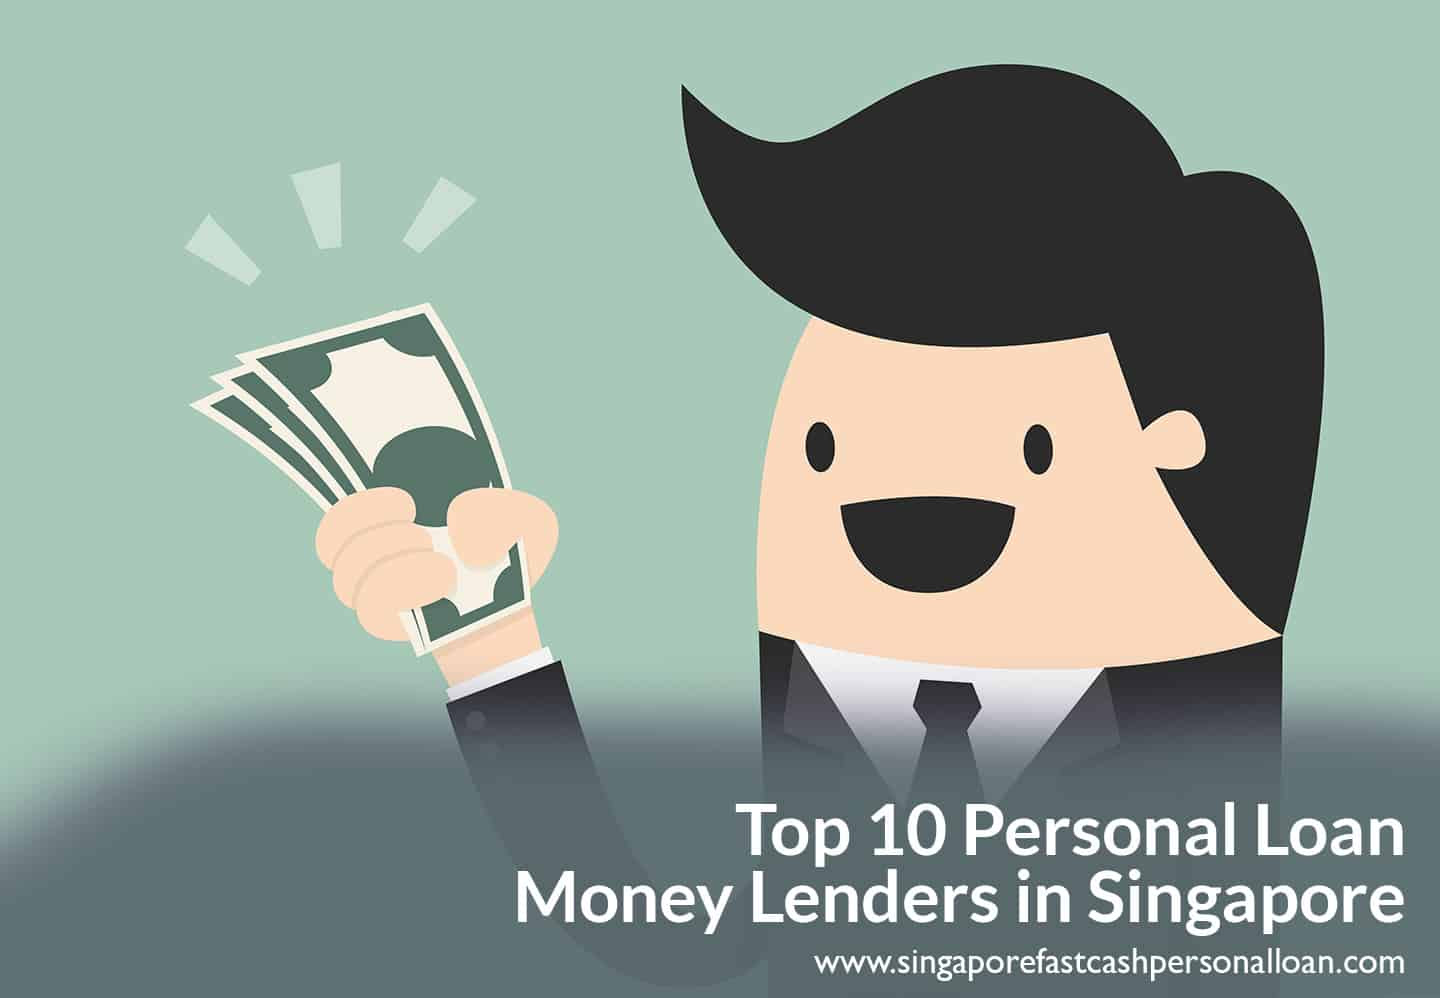 Top 10 Personal Loan Money Lenders in Singapore